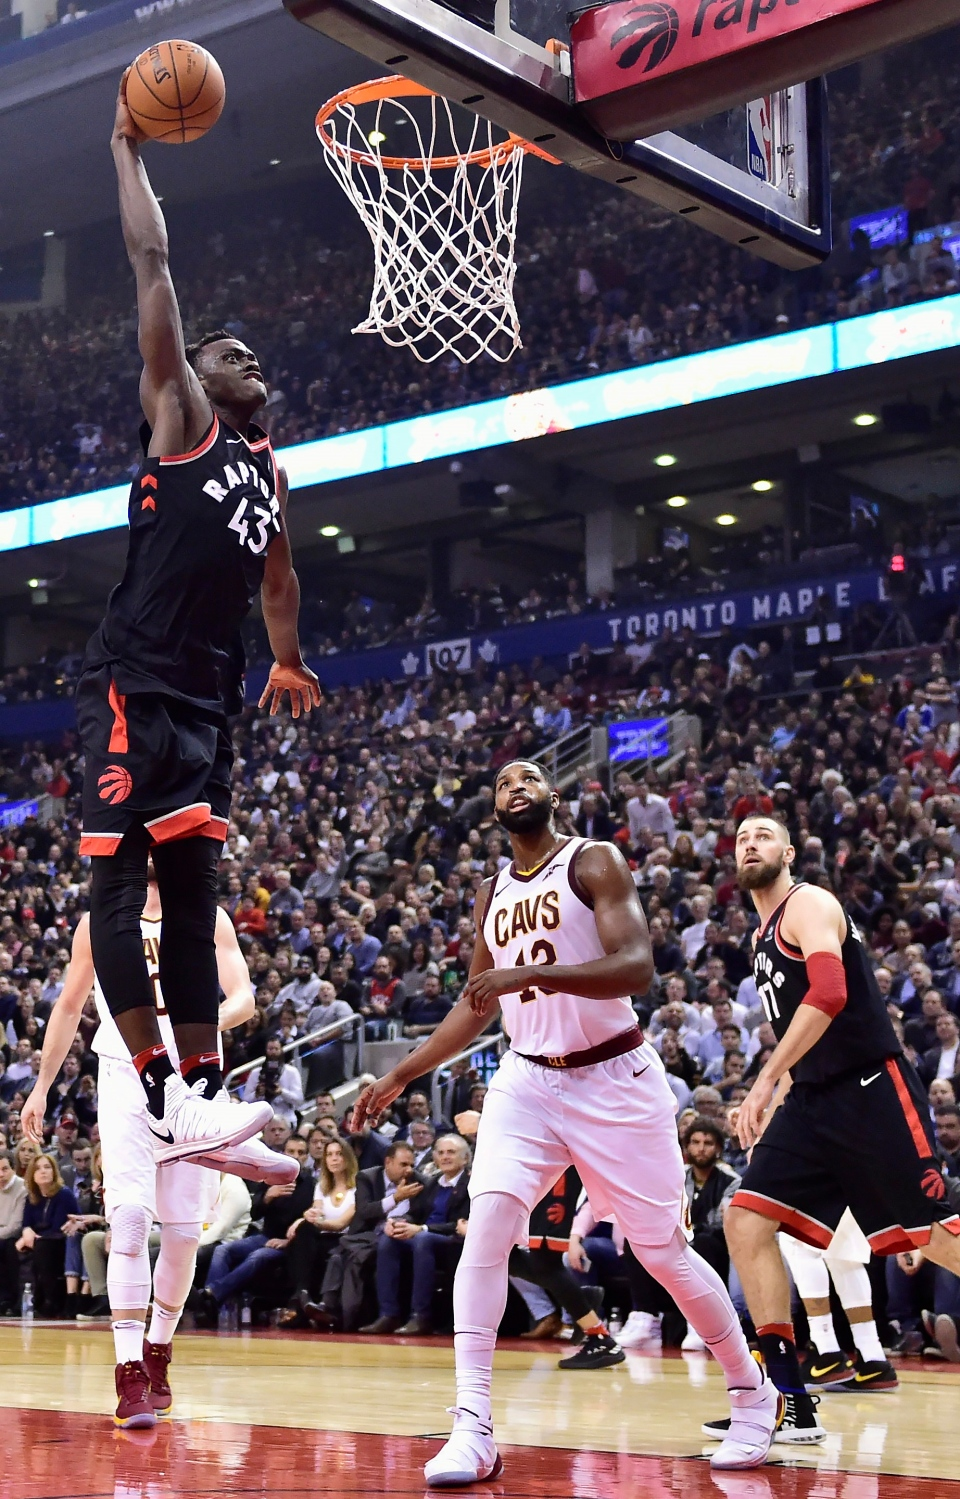 Toronto Raptors forward Pascal Siakam (43) slams the ball past Cleveland Cavaliers centre Tristan Thompson (13) as Raptors centre Jonas Valanciunas (17) during first half NBA basketball action in Toronto on Jan. 11, 2018. THE CANADIAN PRESS/Frank Gunn